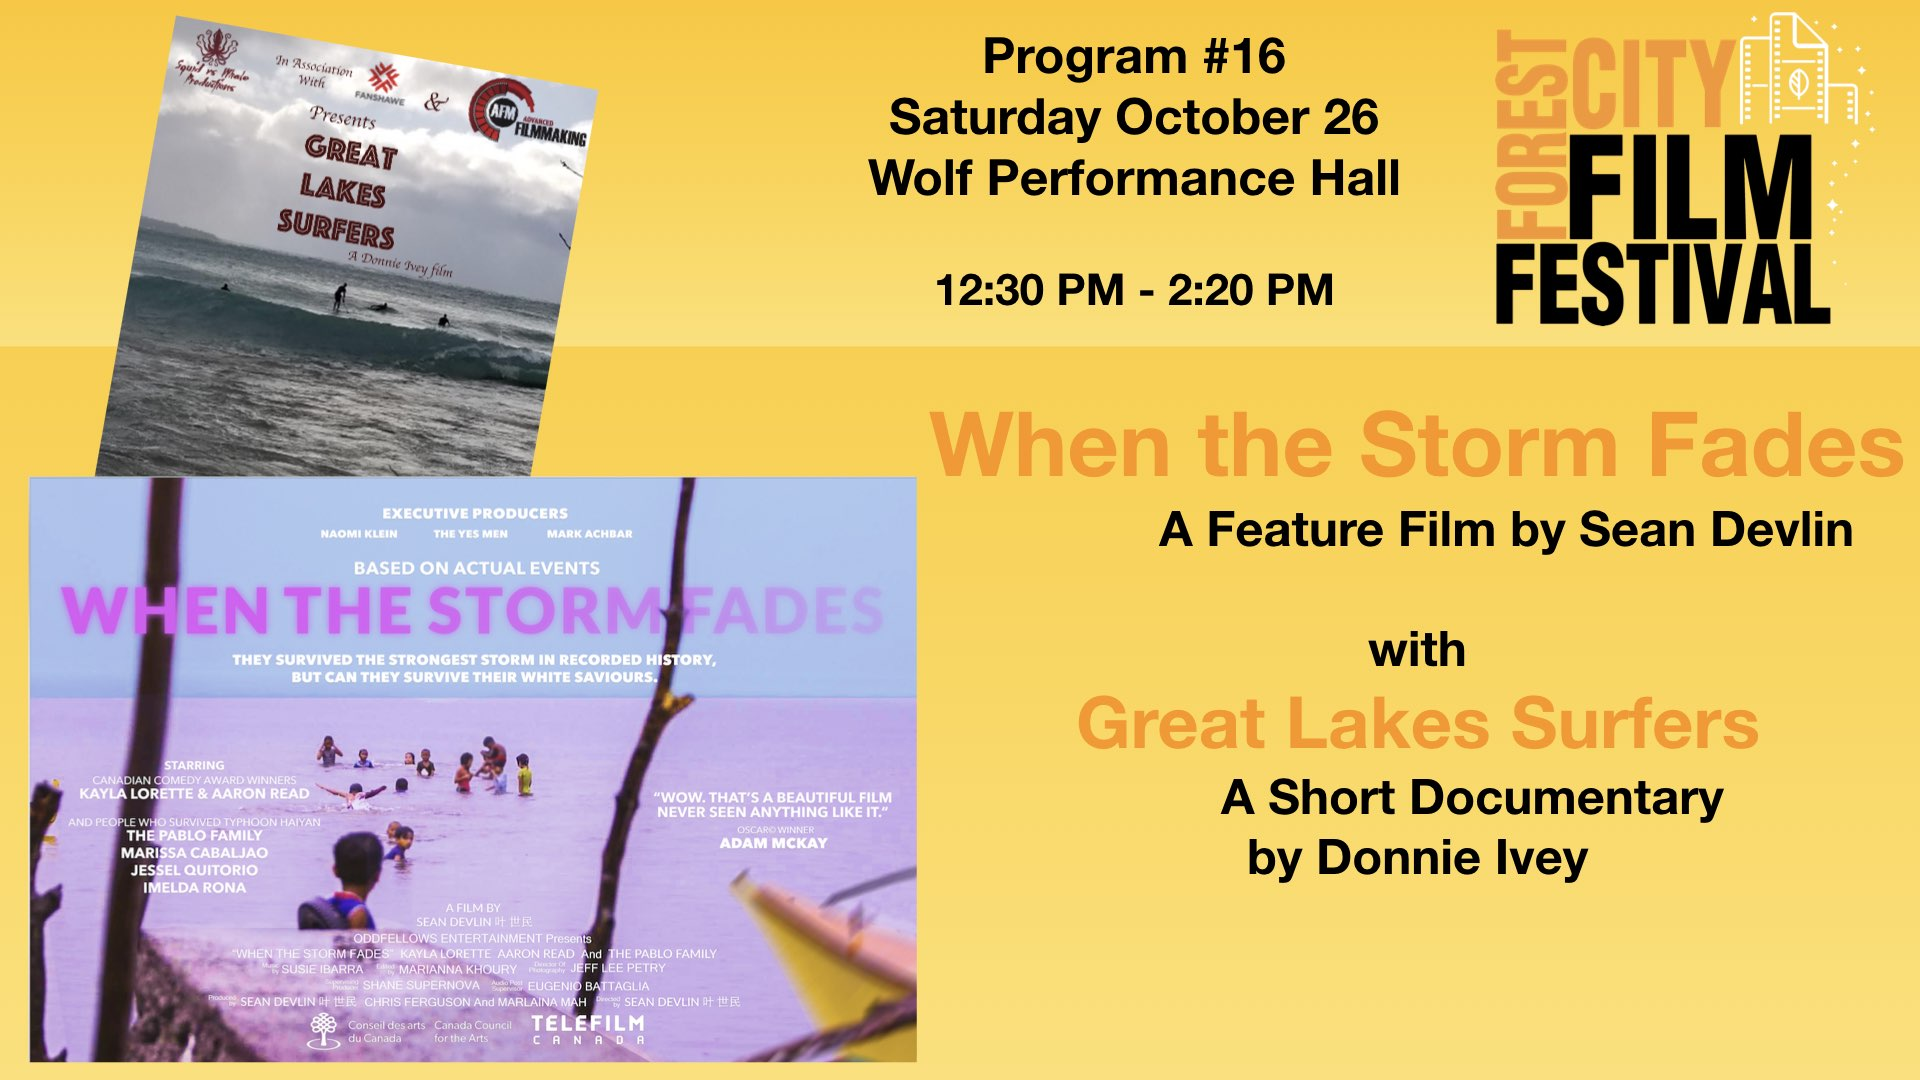 FCFF 2019 - Saturday Early Afternoon at Wolf Program #16 - When the Storm Fades & Great Lakes Surfers